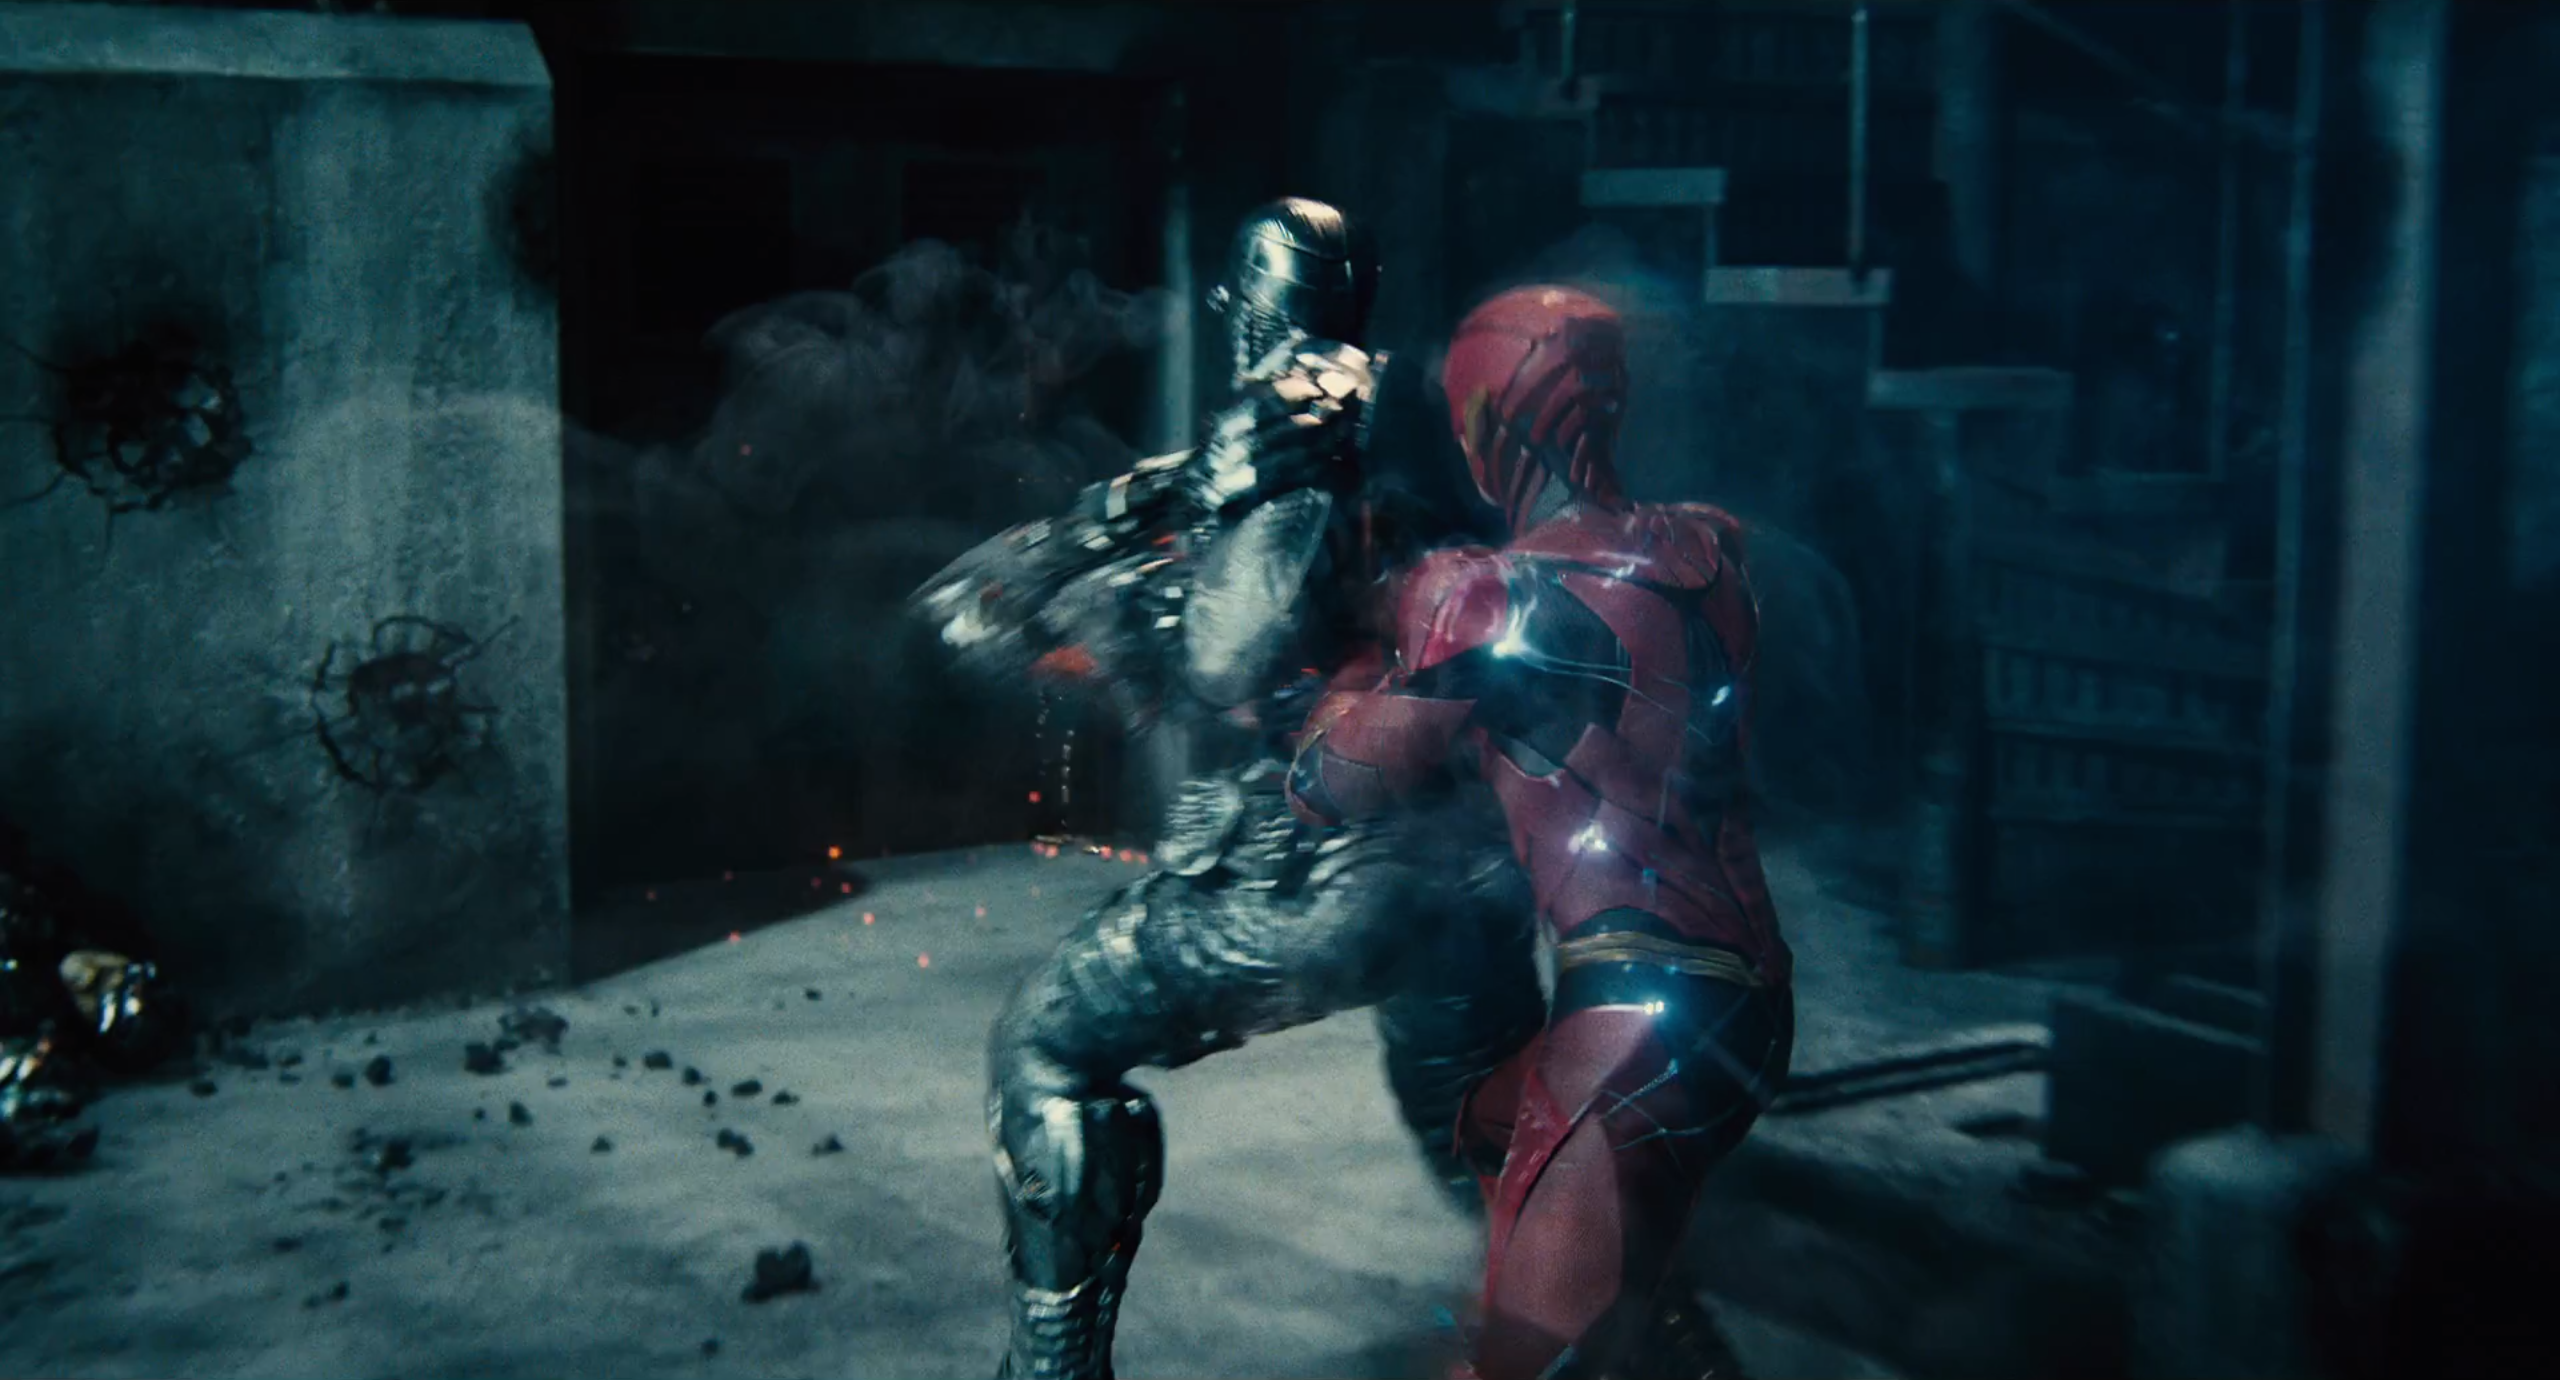 Pin By Normandy On Dc Stuff In 2021 Justice League Justice League Trailer Justice League 2017